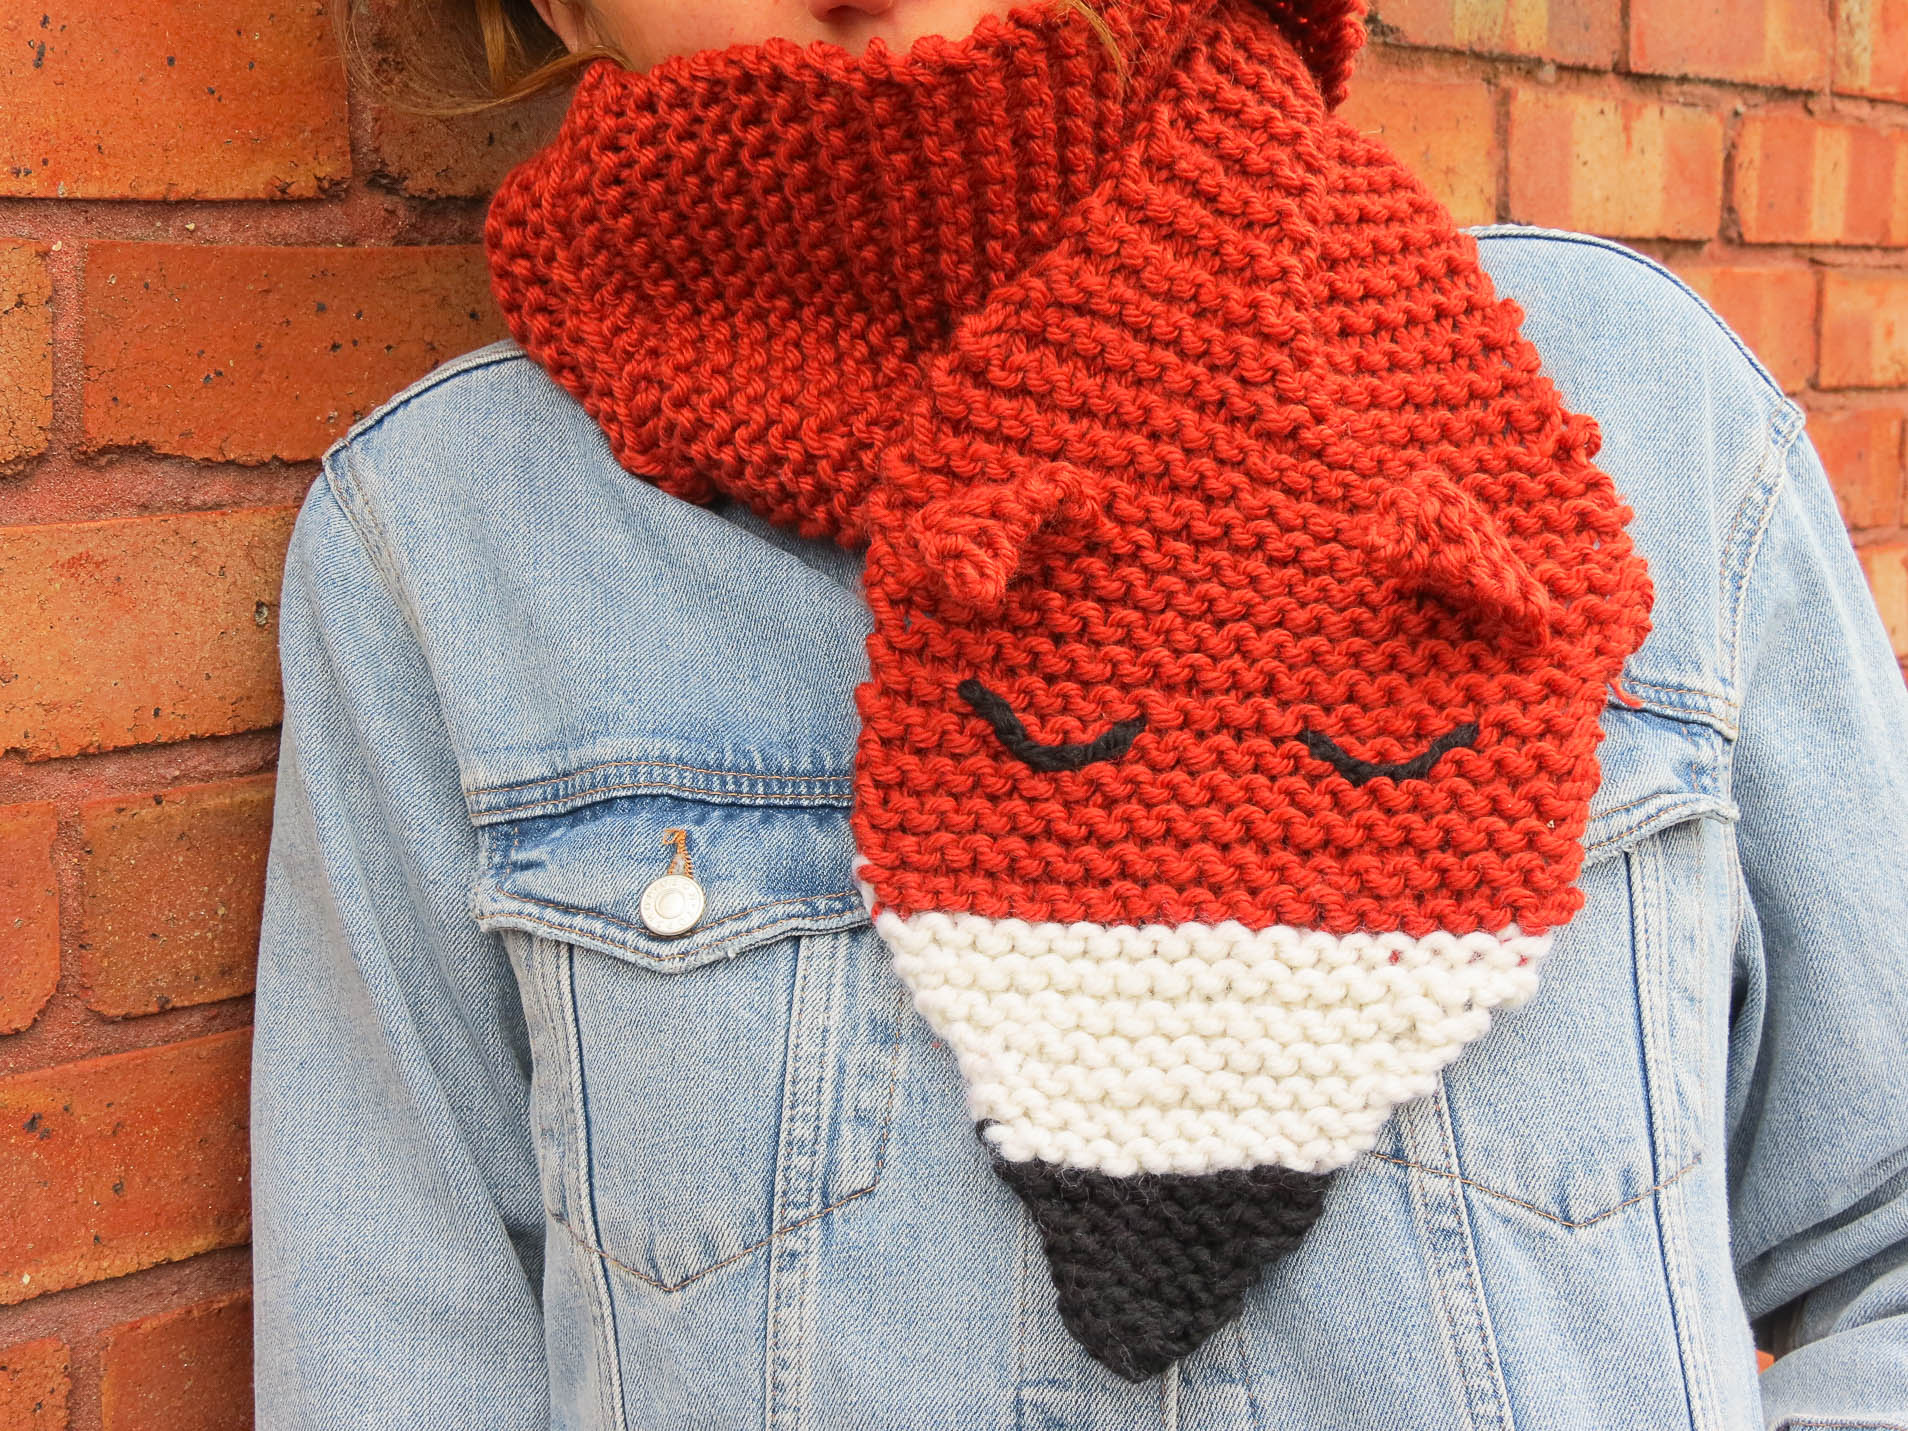 Knitting your foxy scarf and mittens is easy with a Buttonbag Knitting Kit